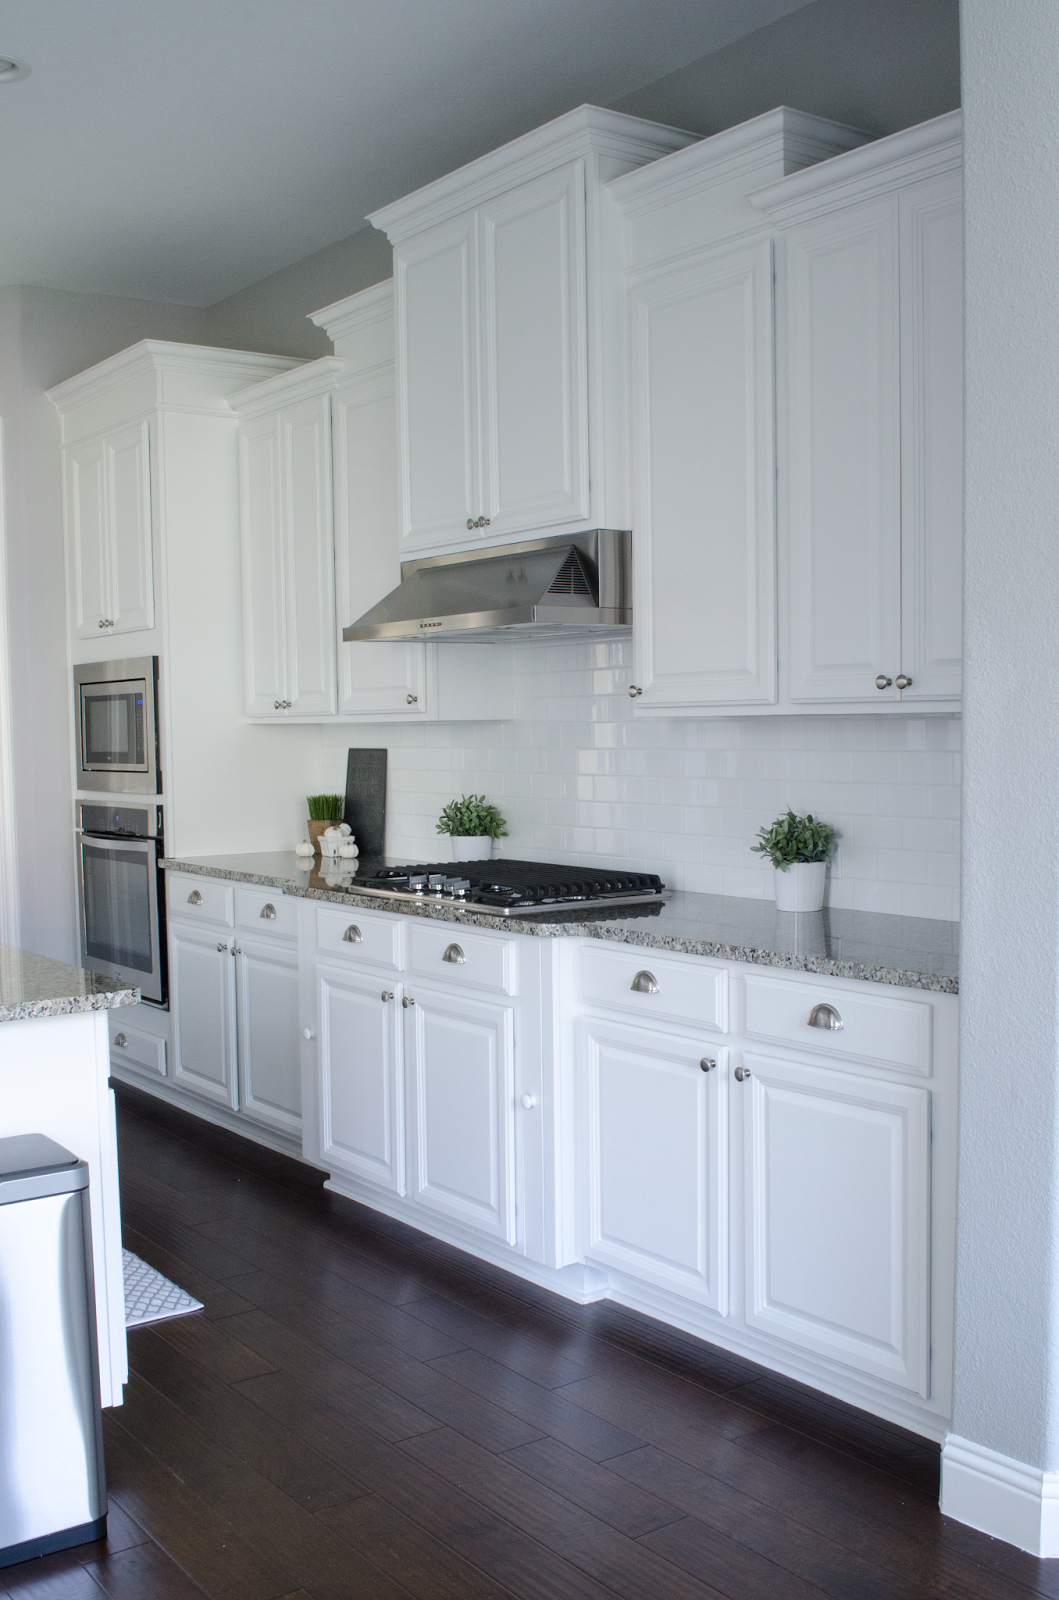 Merveilleux White Kitchen Cabinets Kitchen Cabinets With Crown Molding, Kitchen Cabinet  Crown Molding, Kitchen Cabinets